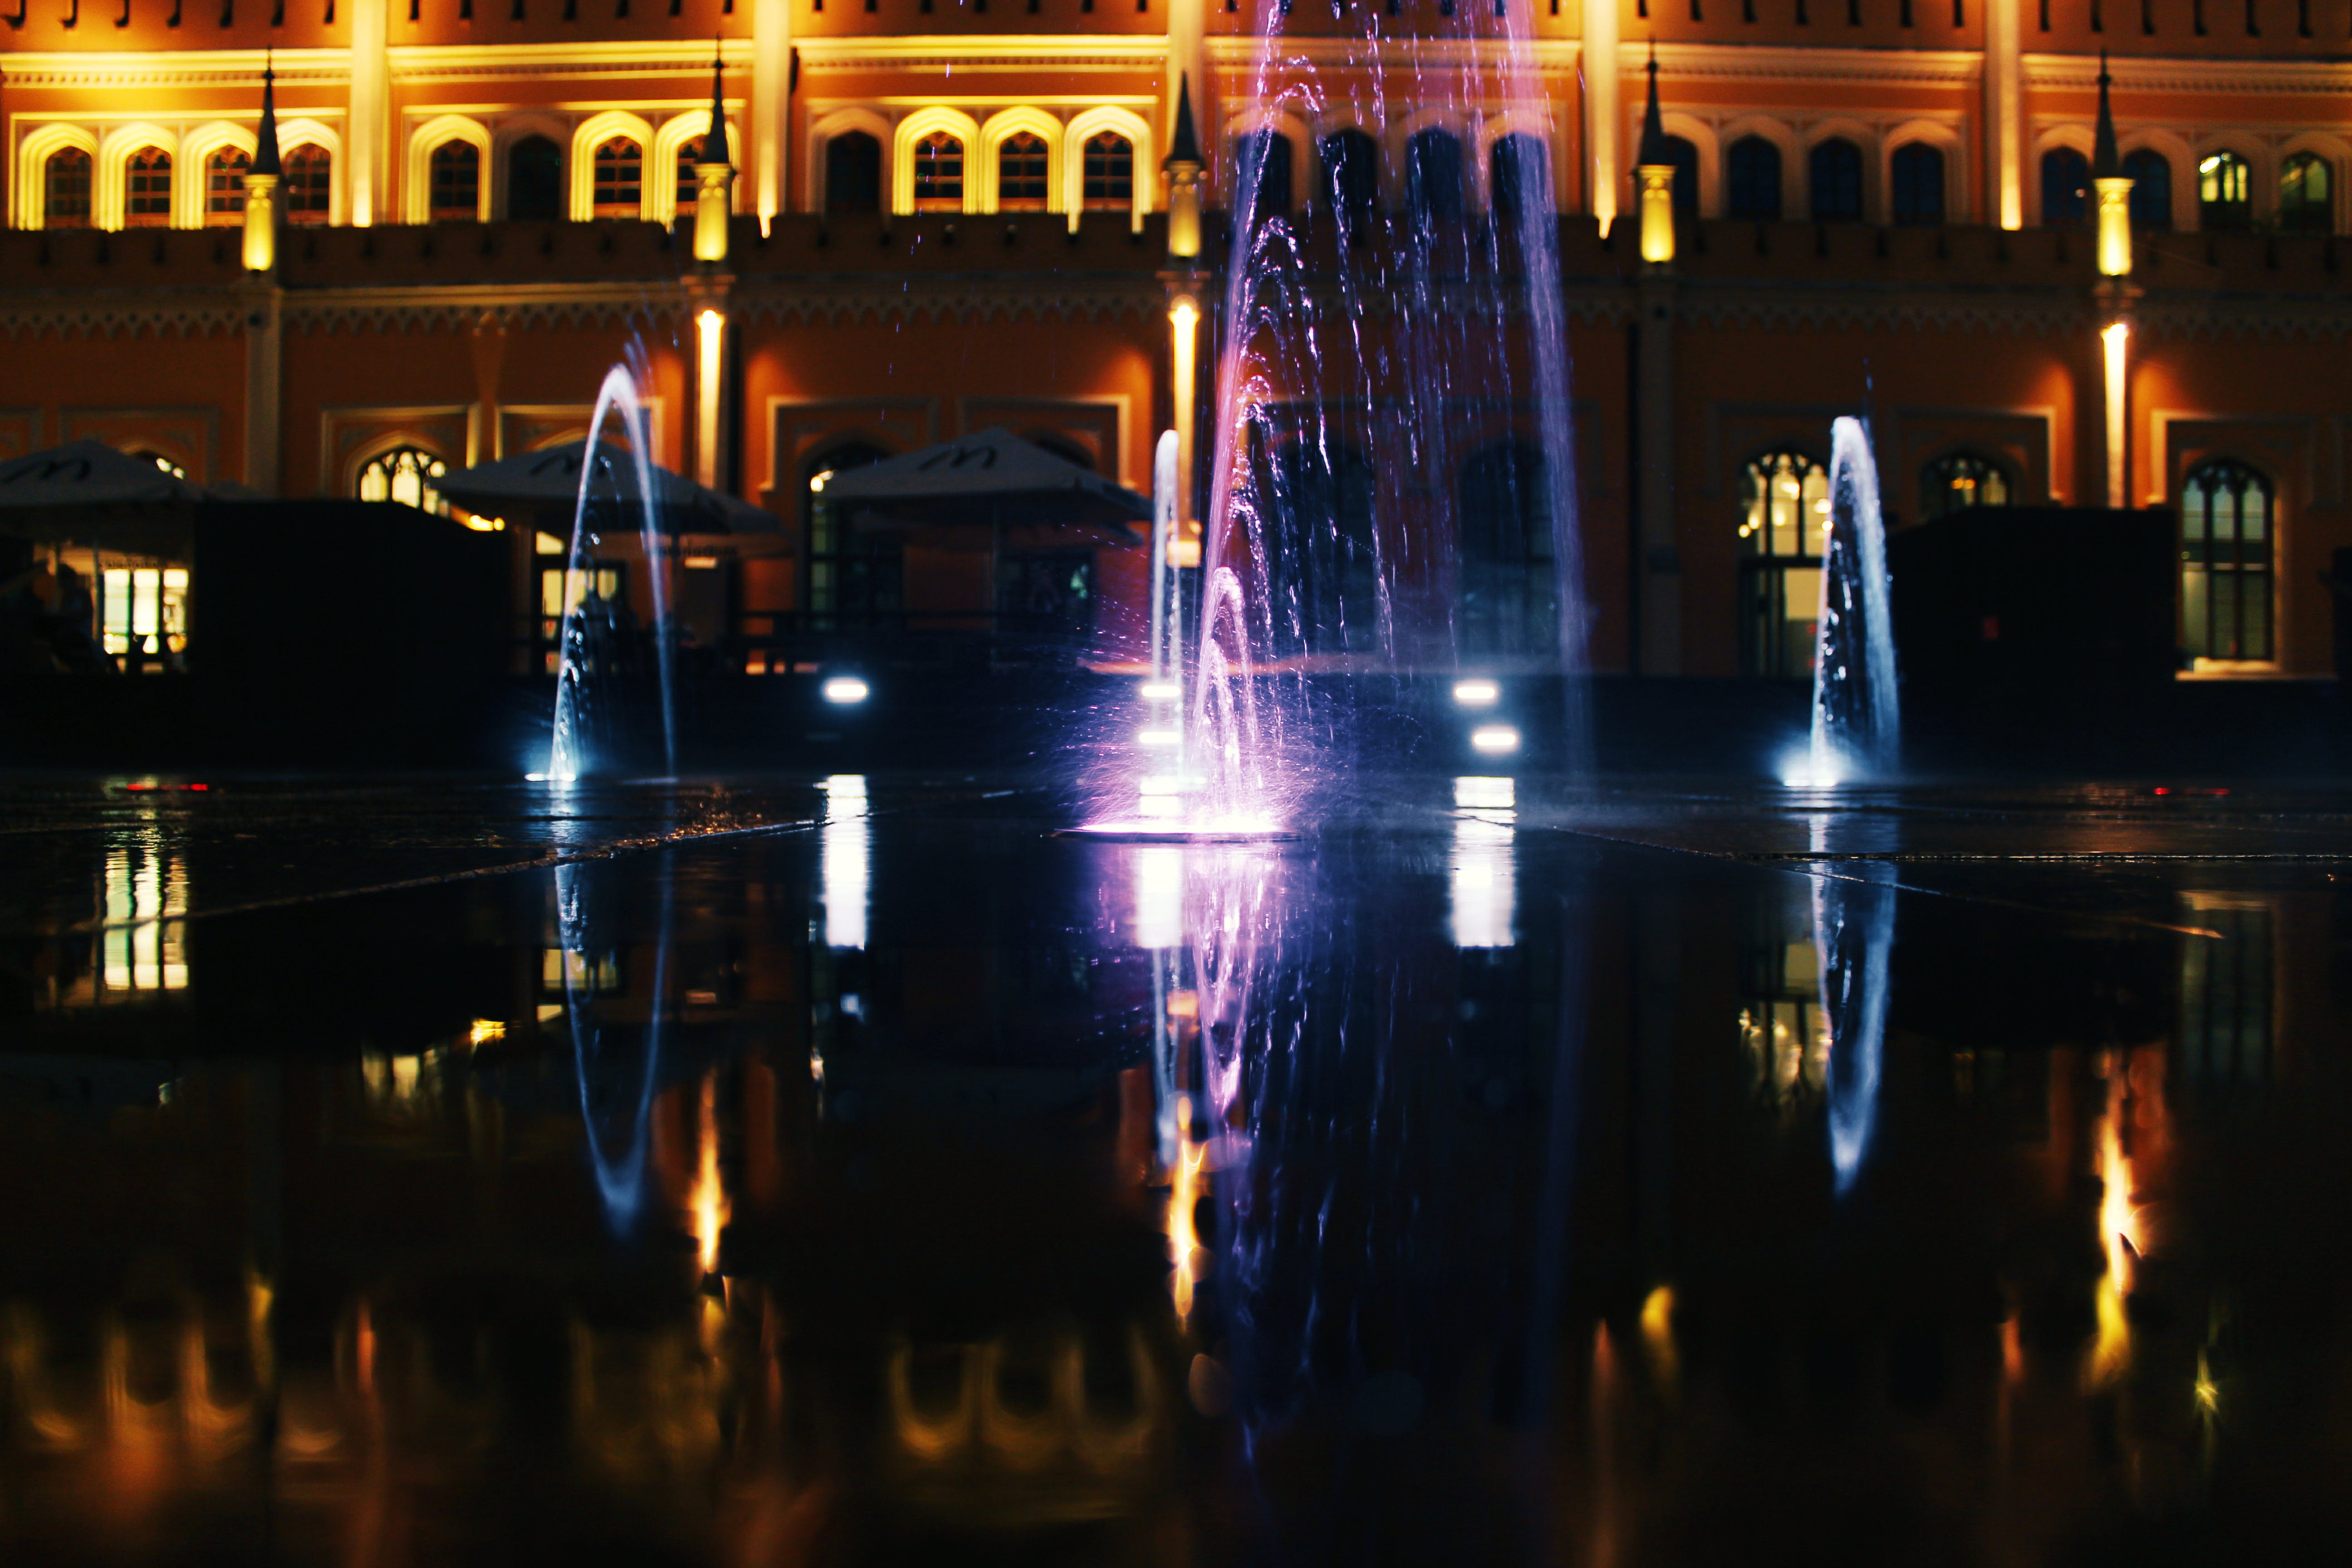 Turned-on Fountains With Light Effect at Nighttime